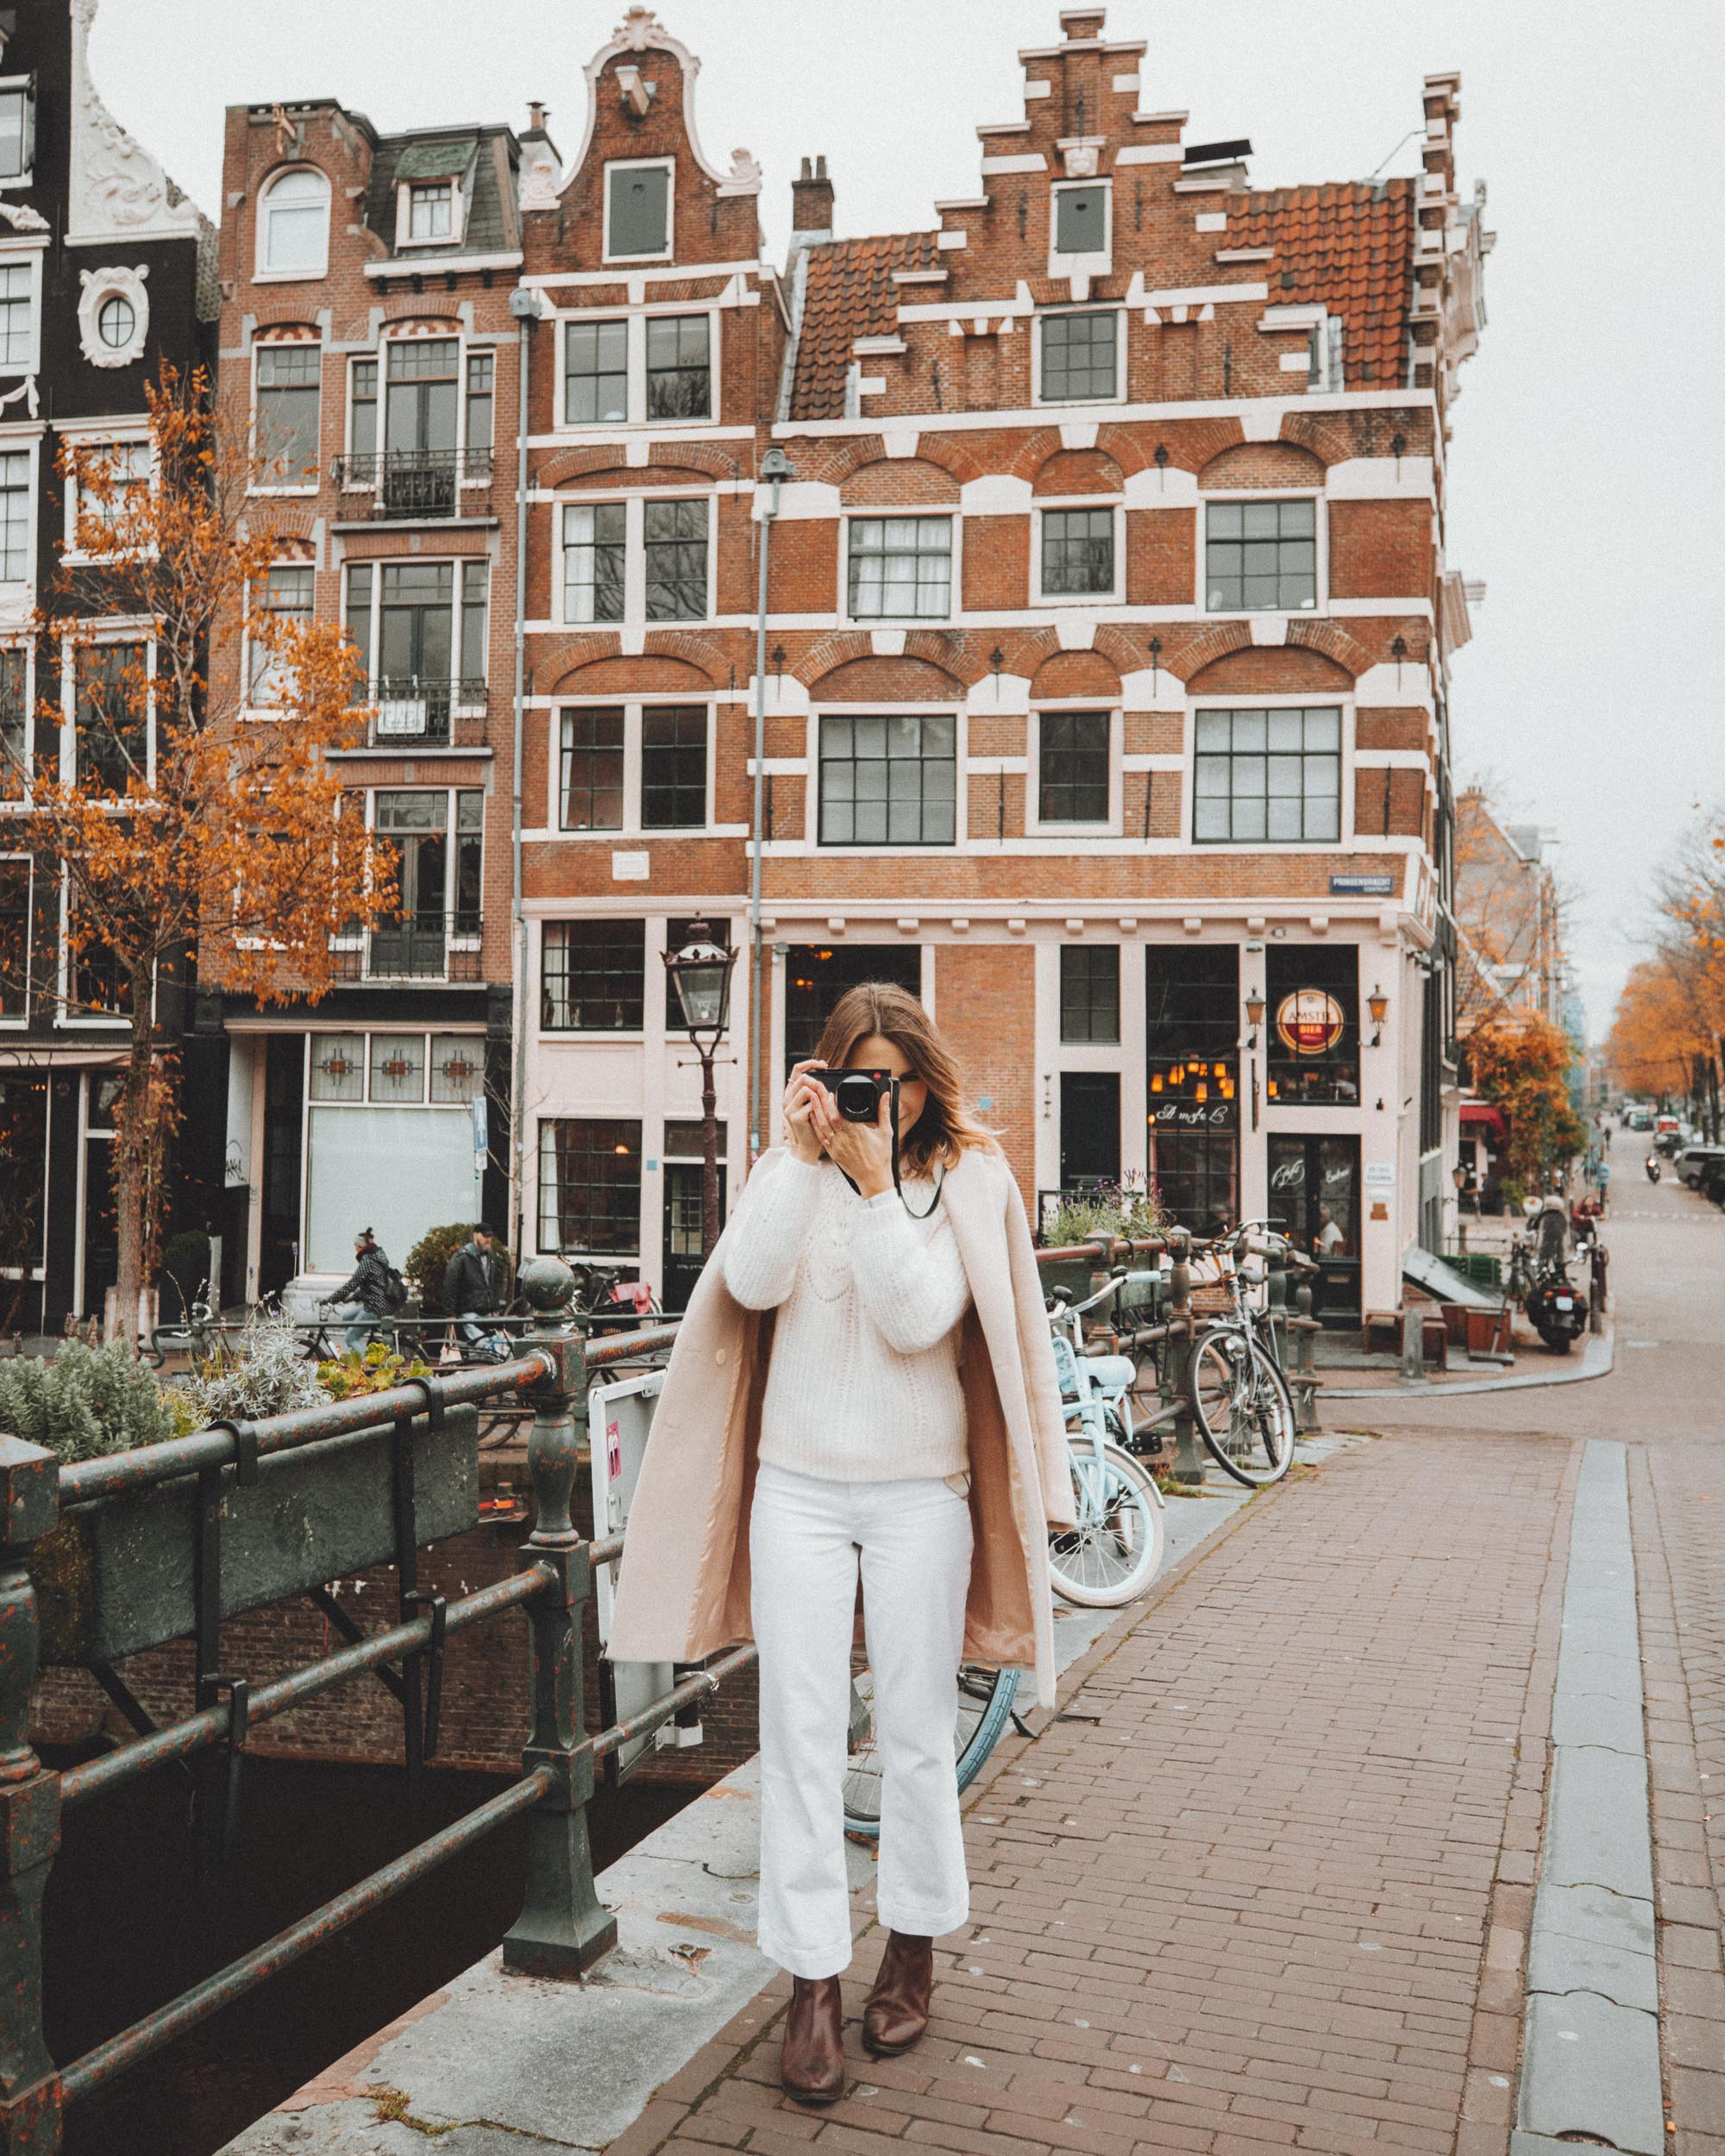 Leica Q2 Taking A Photo in Amsterdam Netherlands